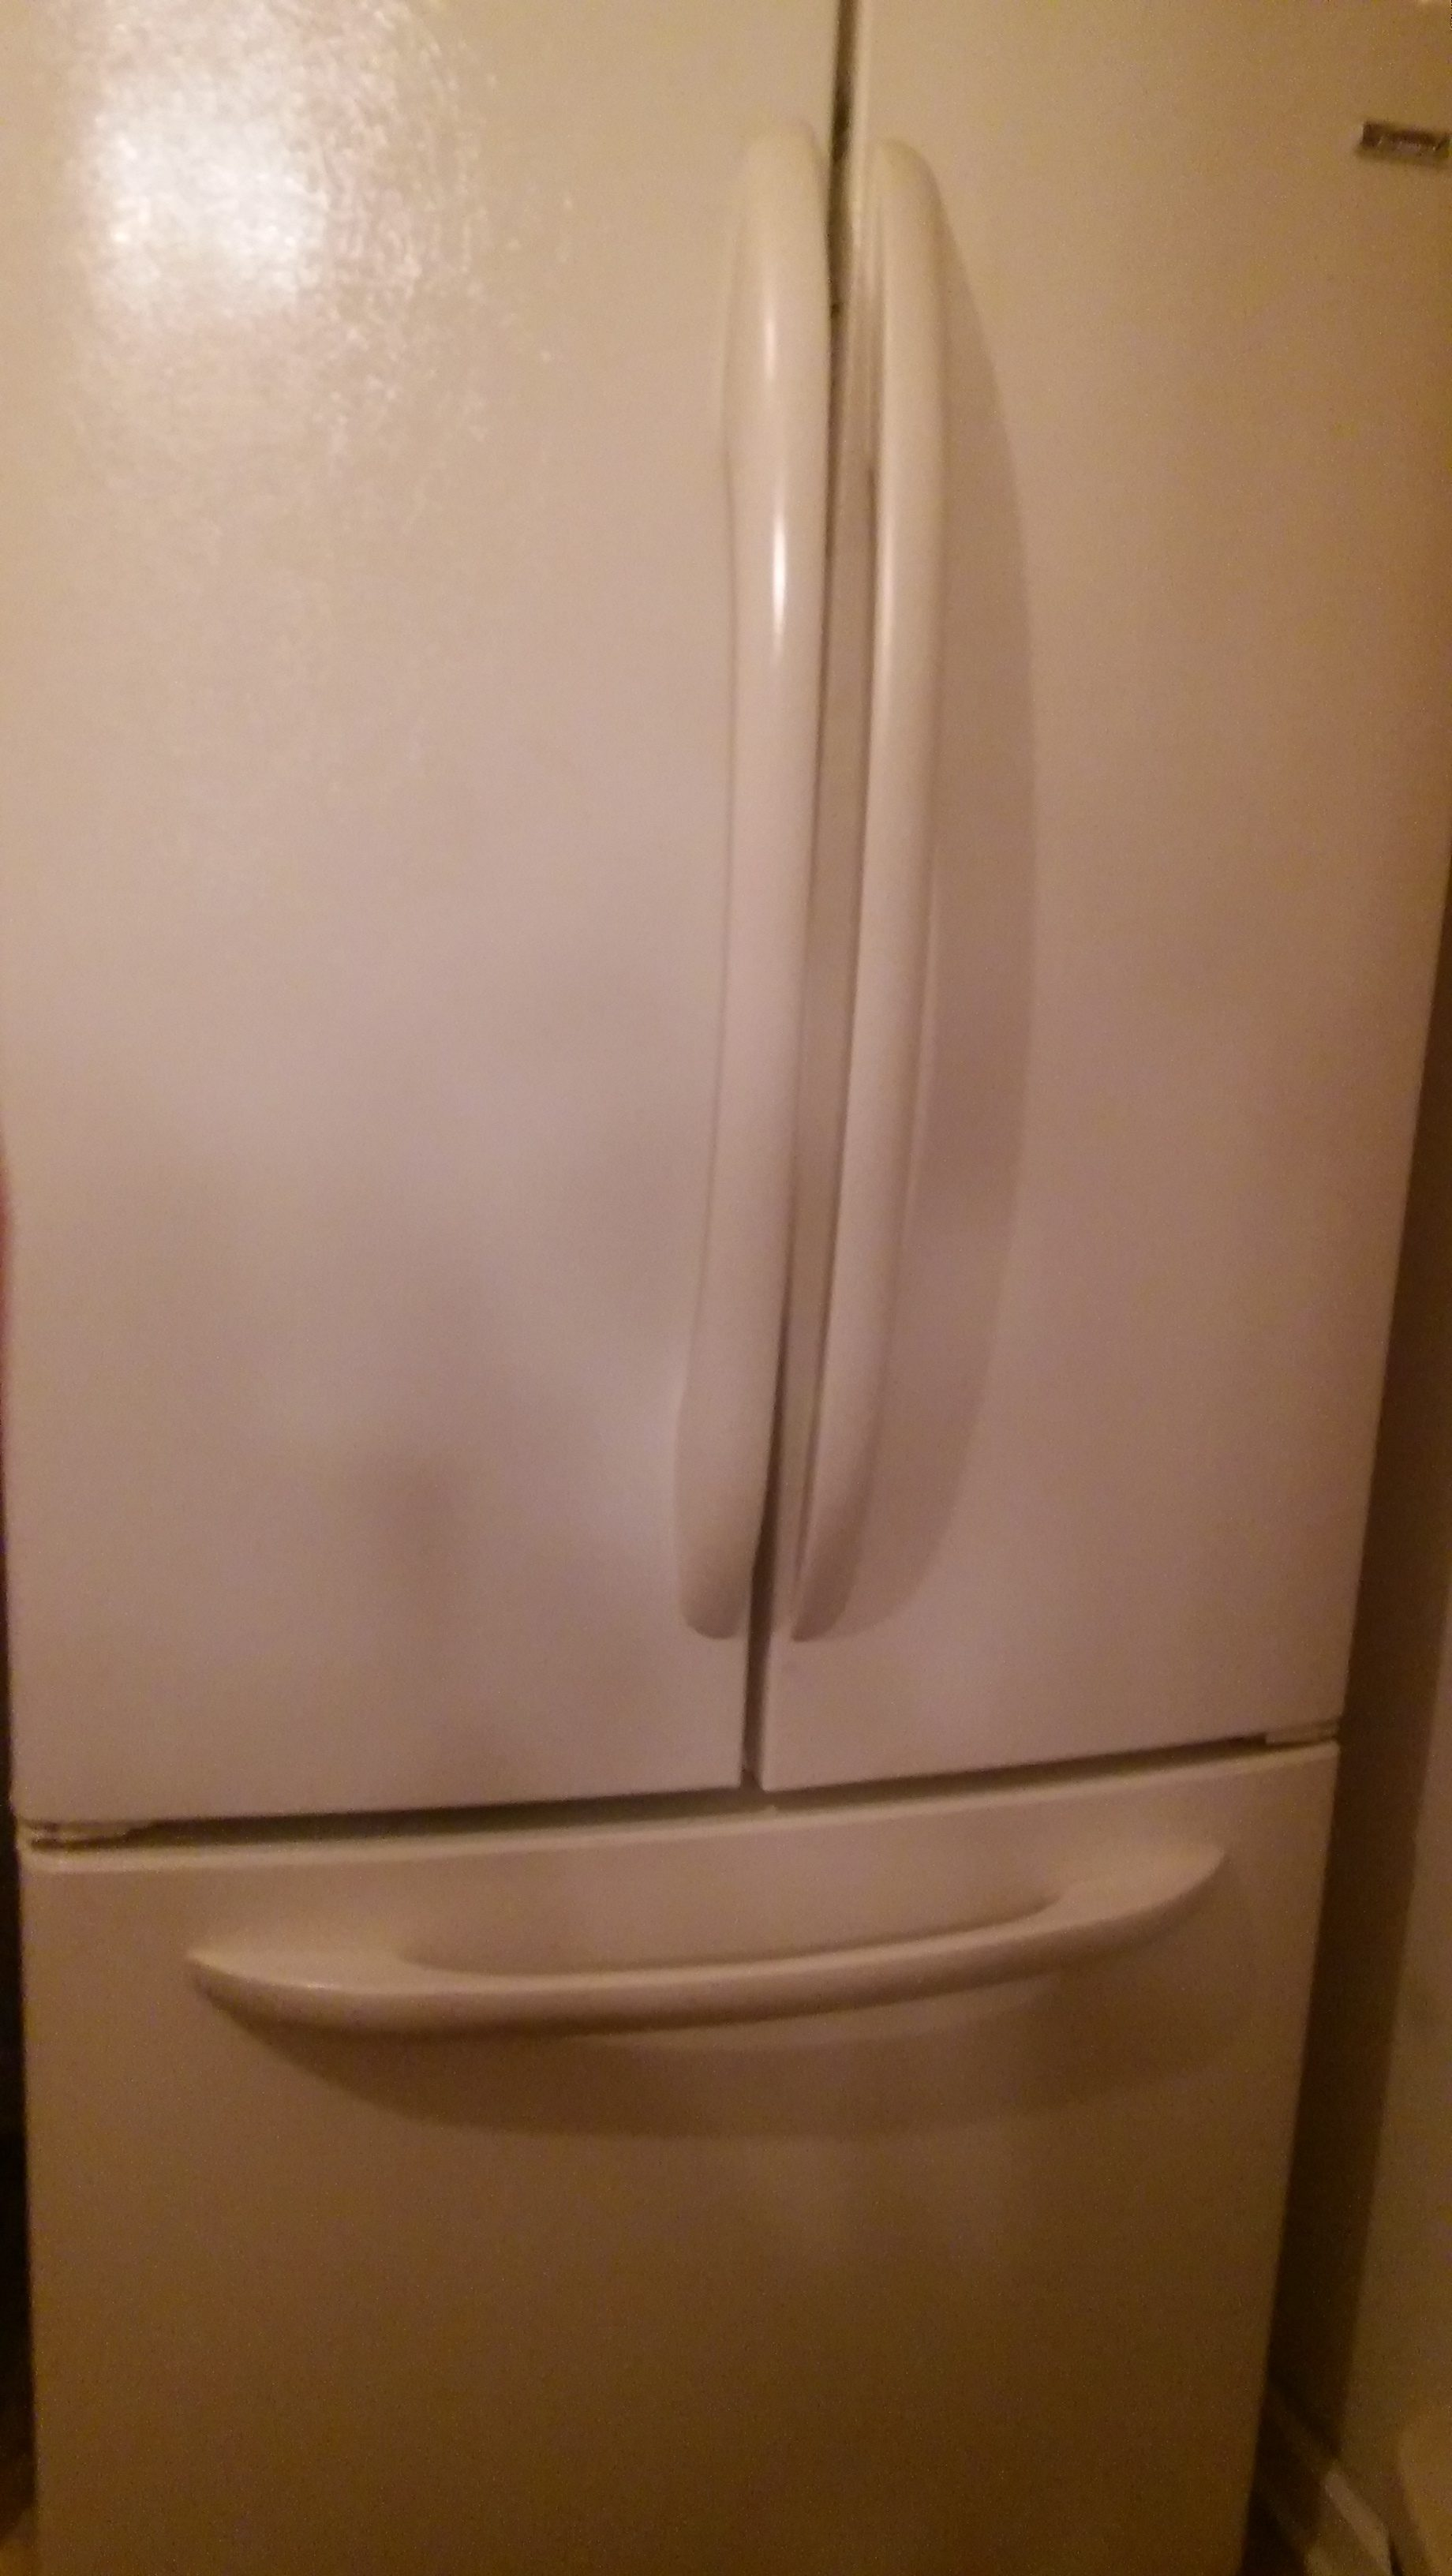 Where can you find information about the Sears appliance sale?